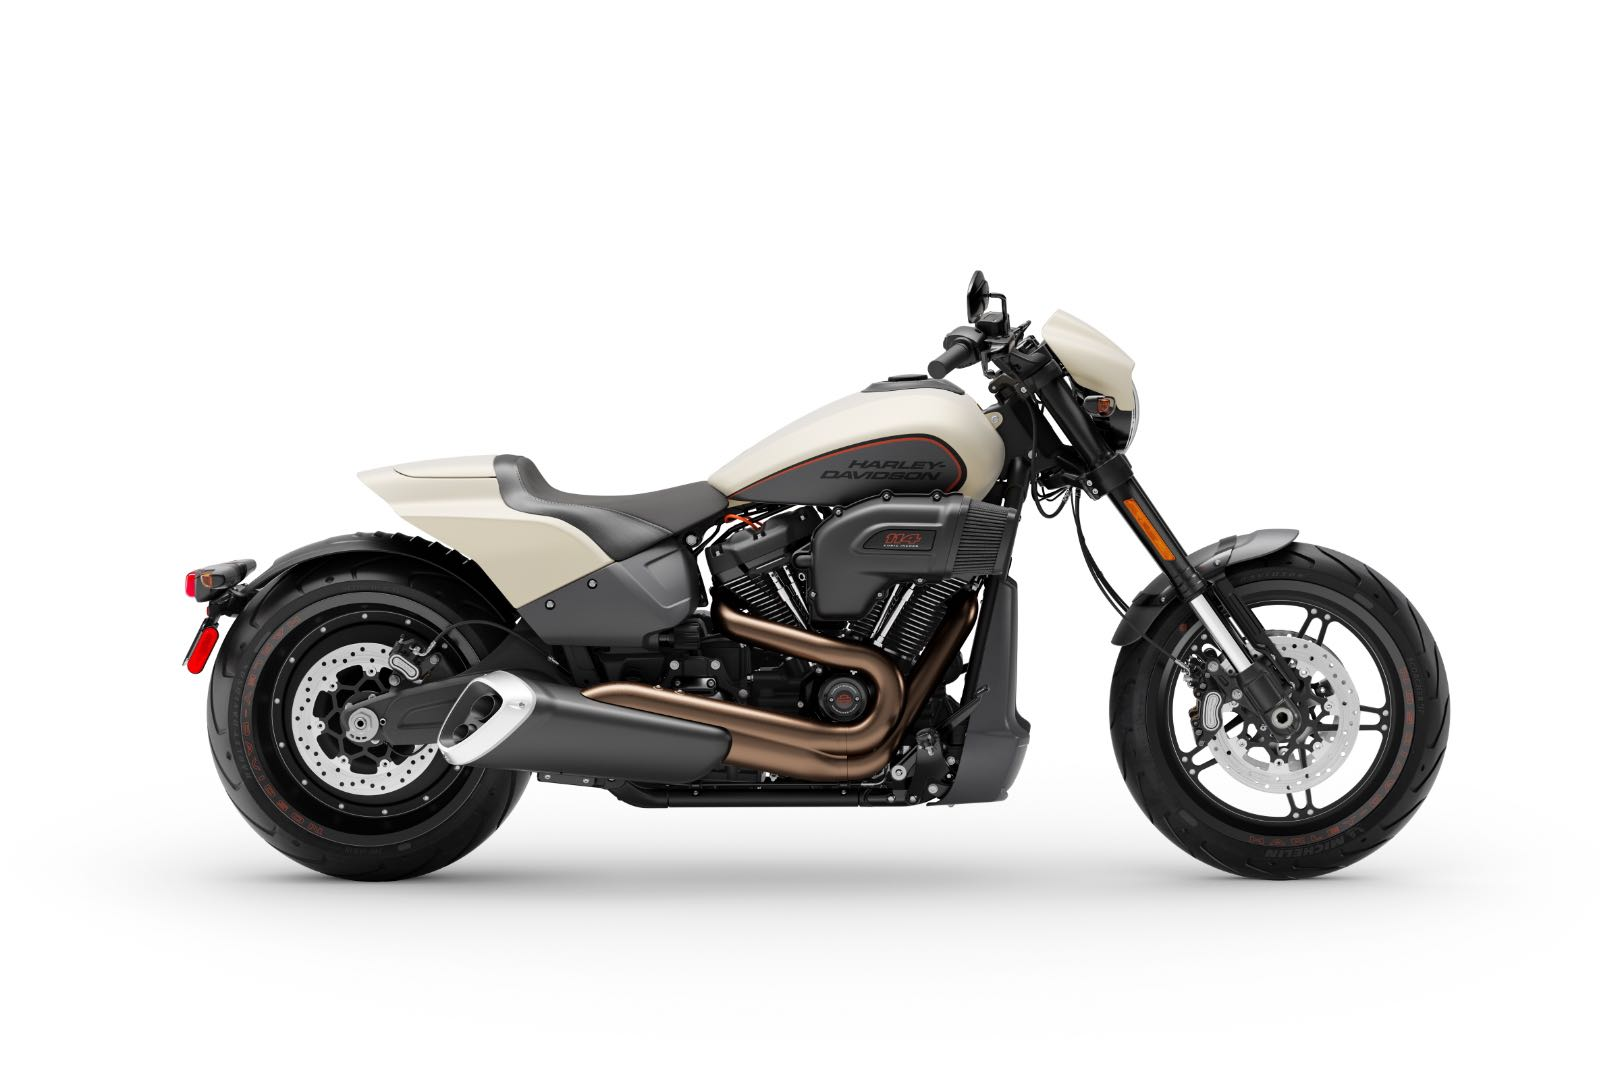 2019 Harley-Davidson FXDR 114 First Look (13 Fast Facts)